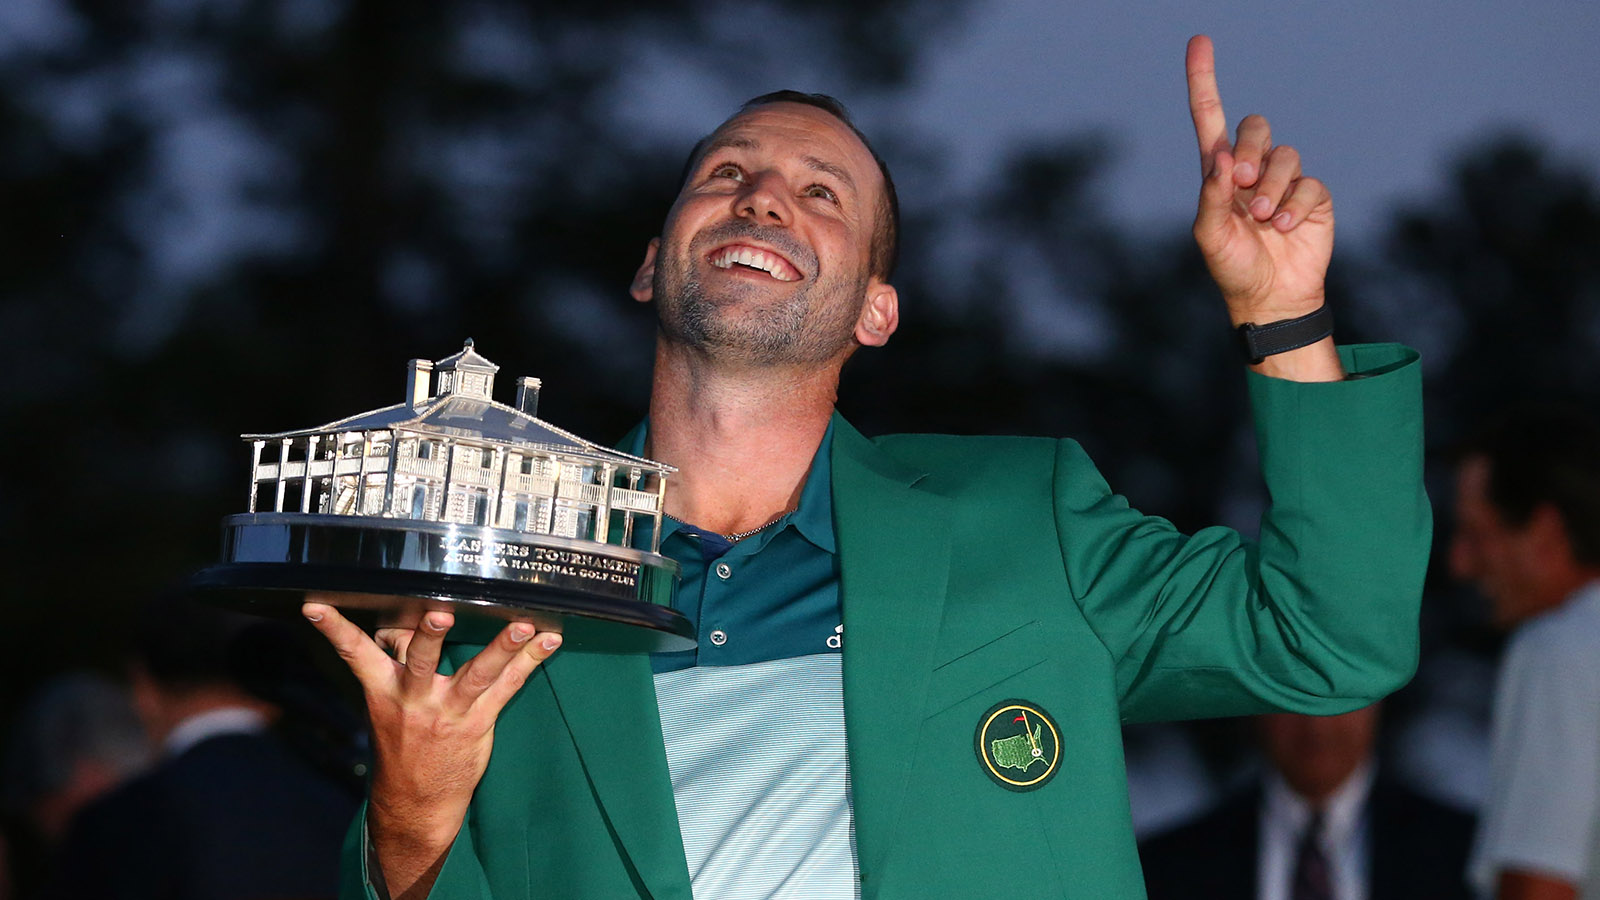 Apr 9, 2017; Augusta, GA, USA; Sergio Garcia celebrates with the trophy at the green jacket ceremony after winning The Masters golf tournament at Augusta National Golf Club. Mandatory Credit: Rob Schumacher-USA TODAY Sports